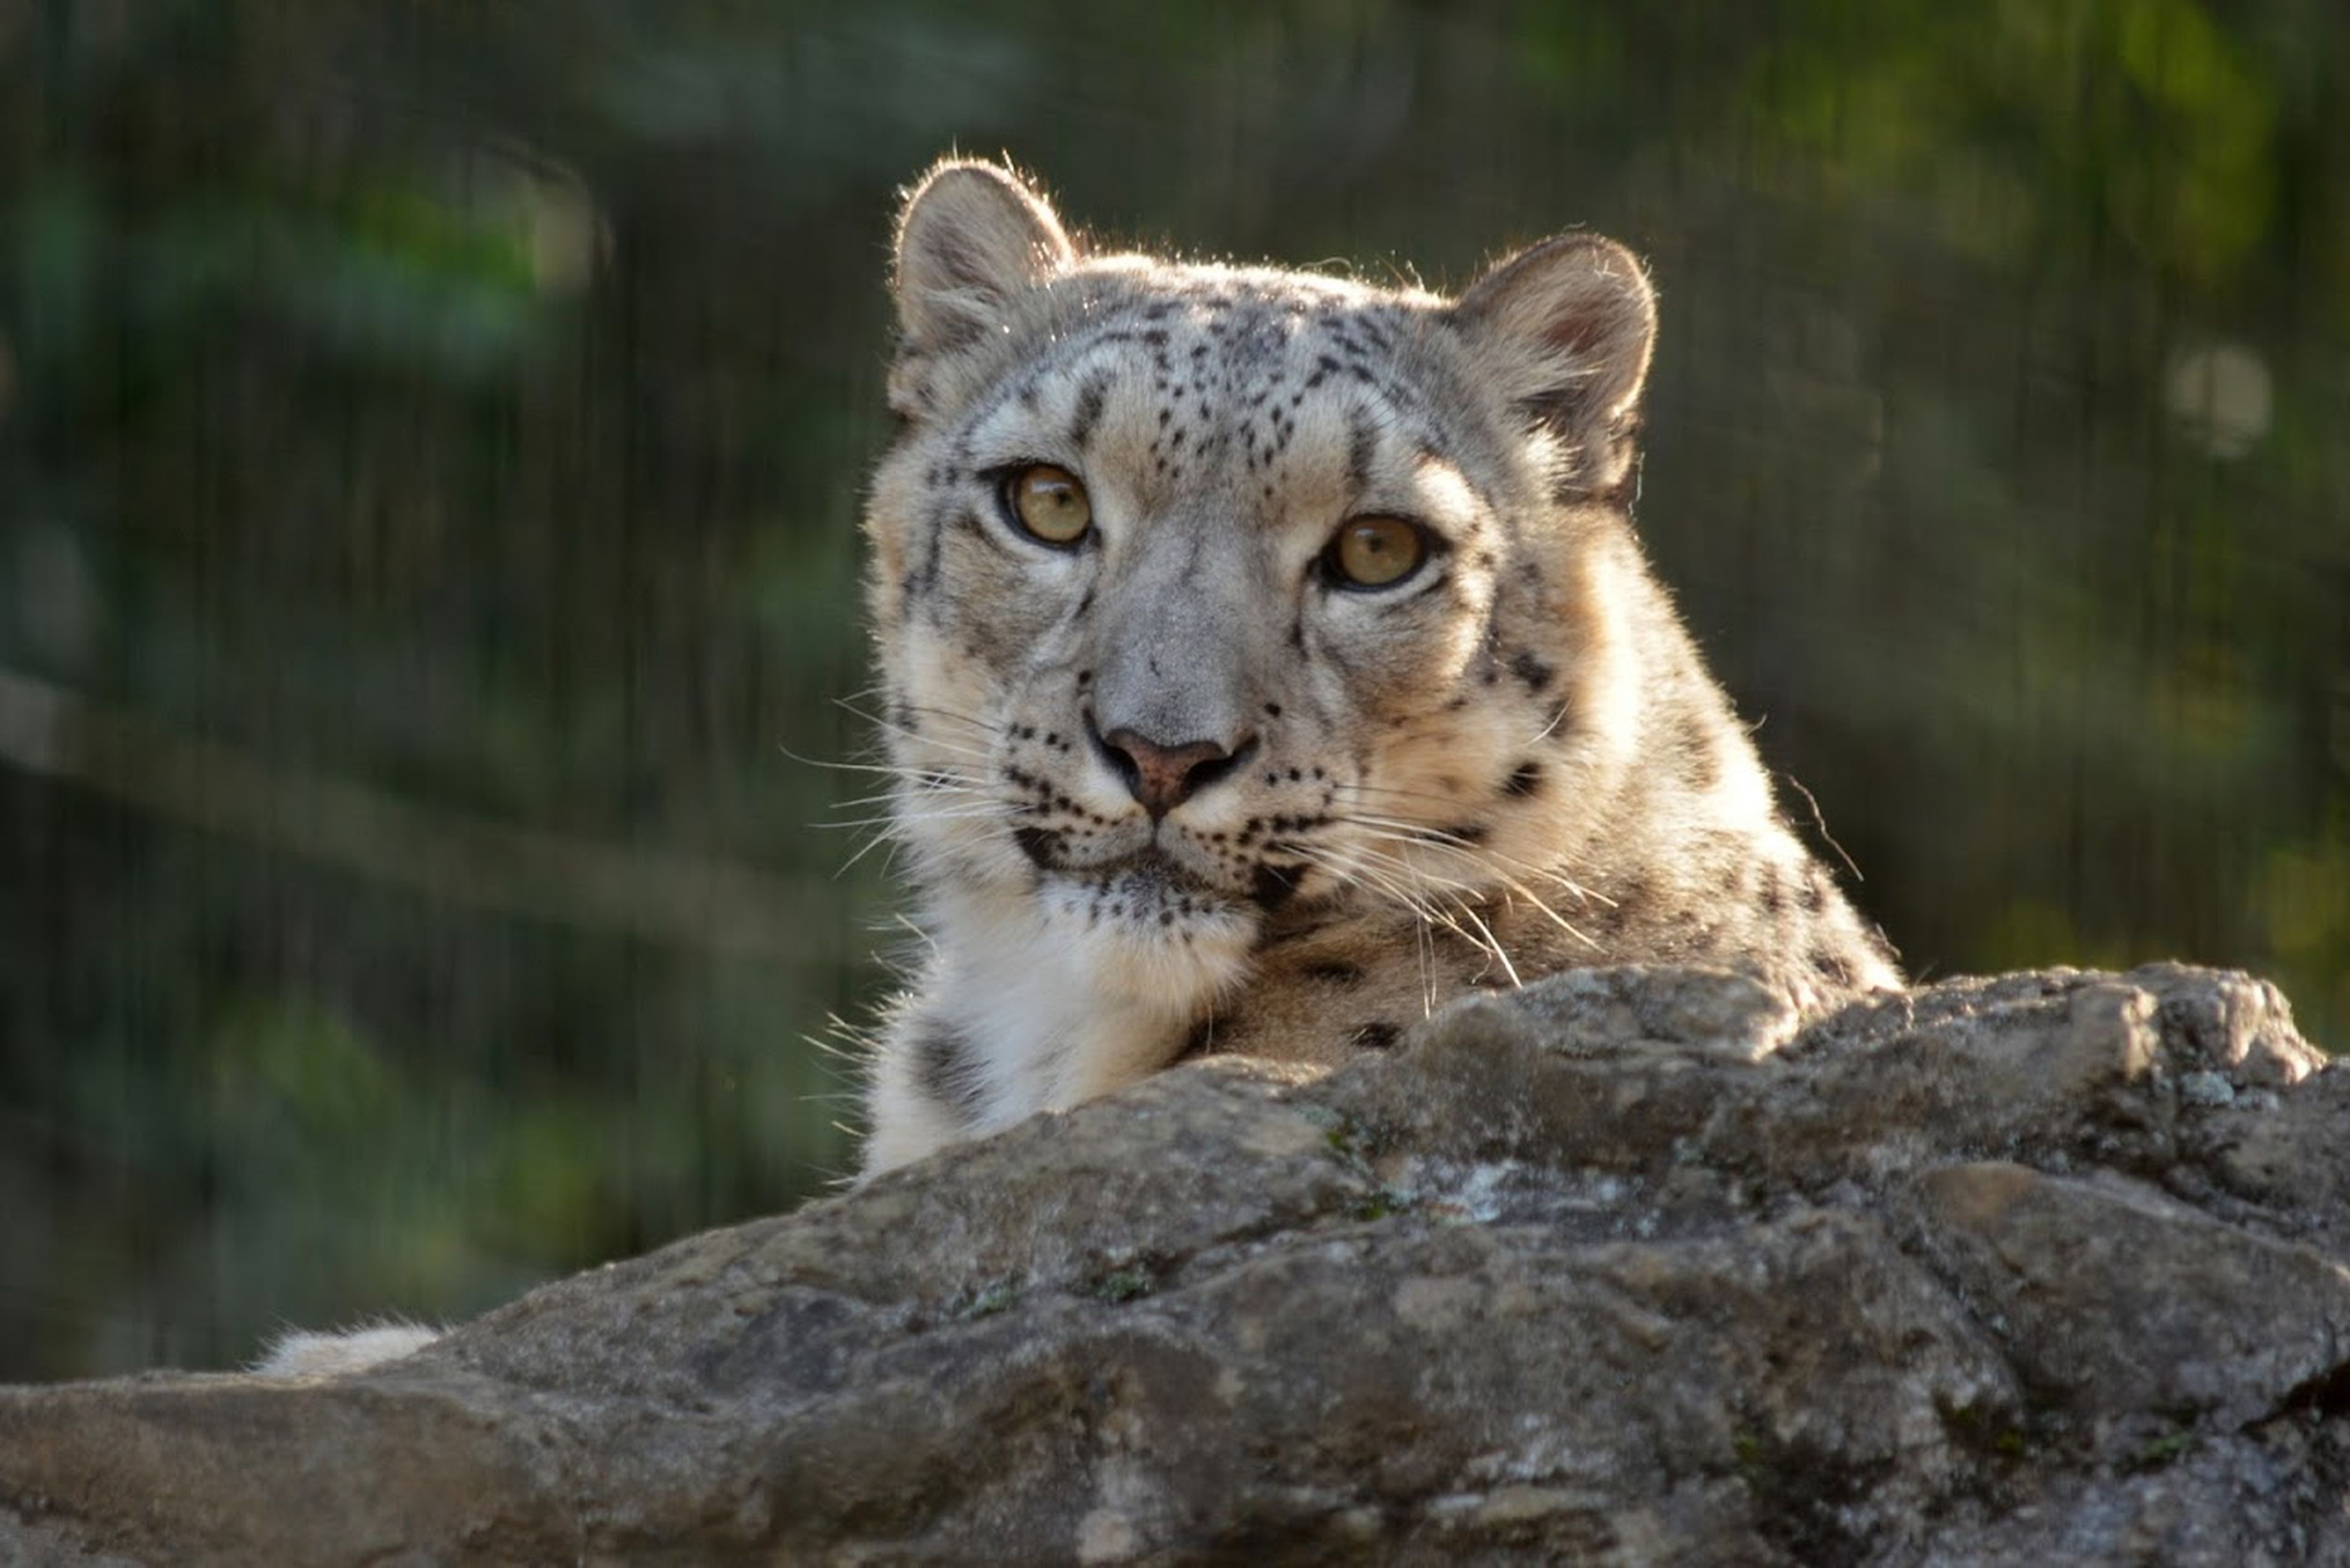 animal themes, animals in the wild, one animal, wildlife, focus on foreground, mammal, close-up, forest, nature, animal head, day, outdoors, safari animals, no people, squirrel, rock - object, portrait, zoo, zoology, side view